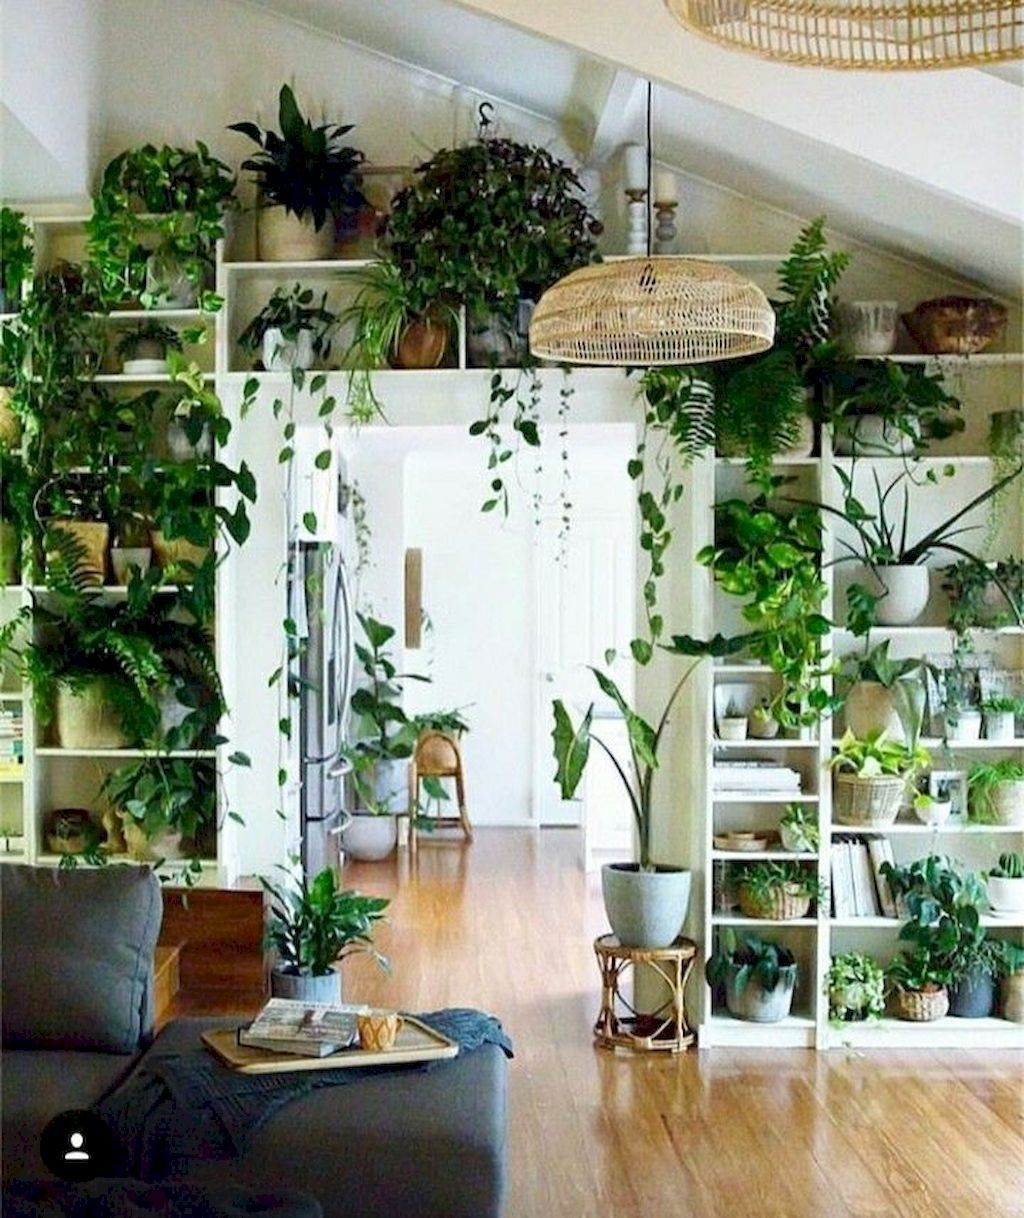 Amazing life plant decorations indoors shairoom also home decor and furniture rh pinterest